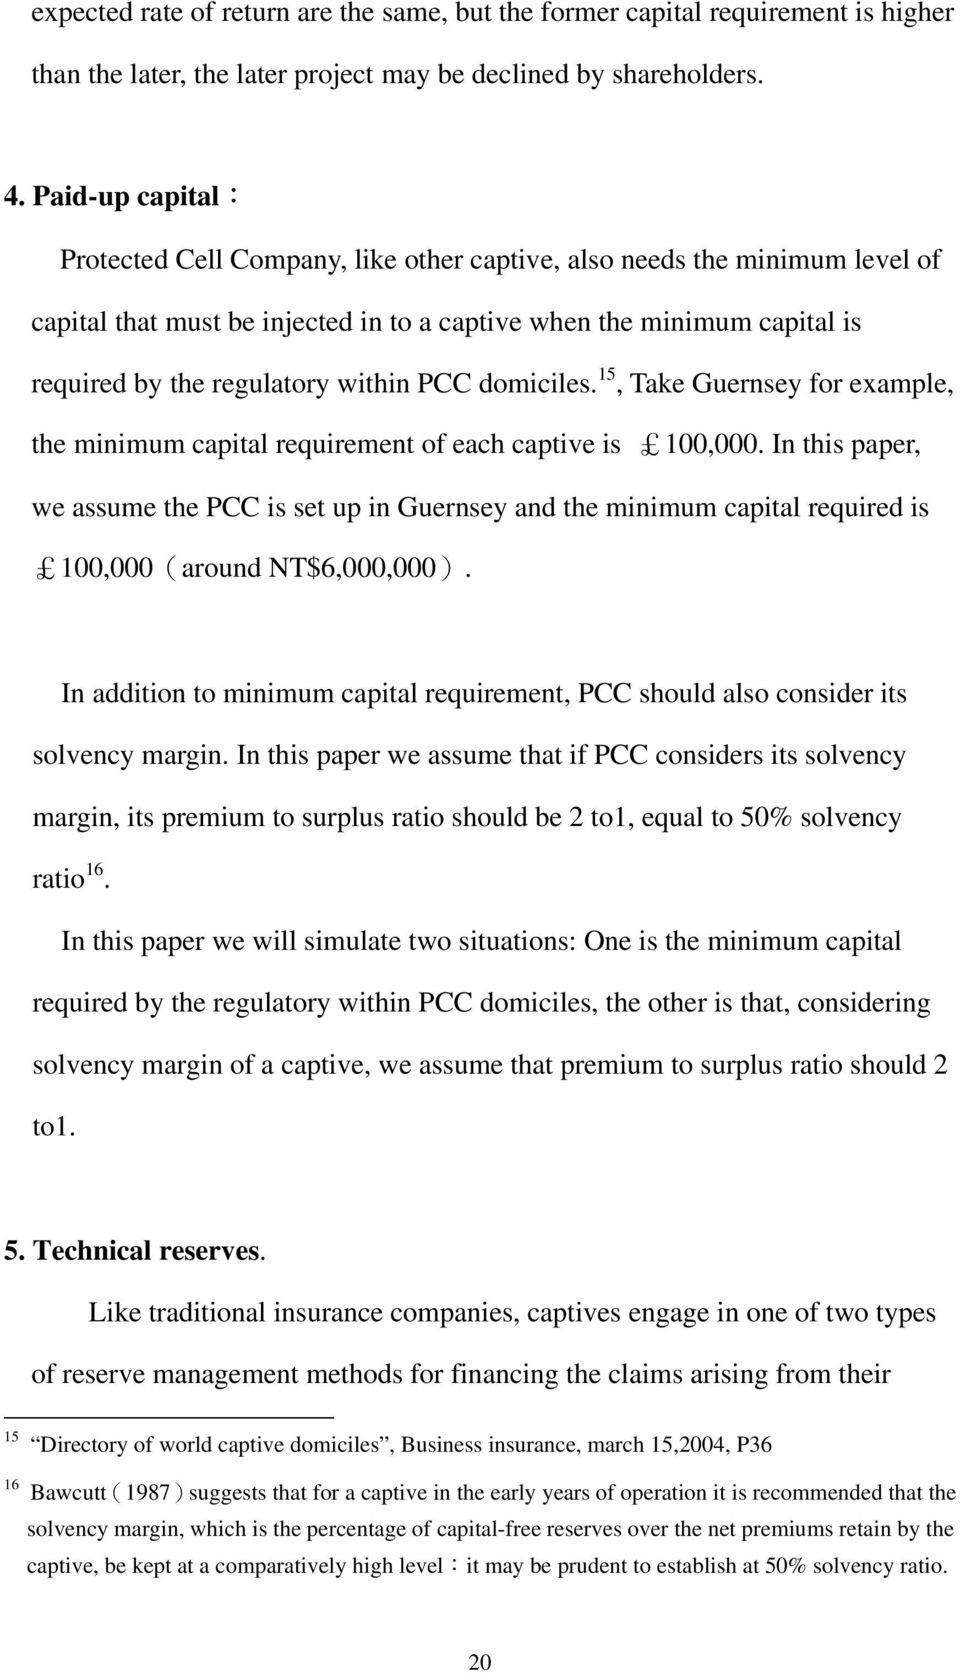 15, Take Guernsey for example, he minimum capial requiremen of each capive is 100,000. In his paper, we assume he CC is se up in Guernsey and he minimum capial required is 100,000 around NT$6,000,000.